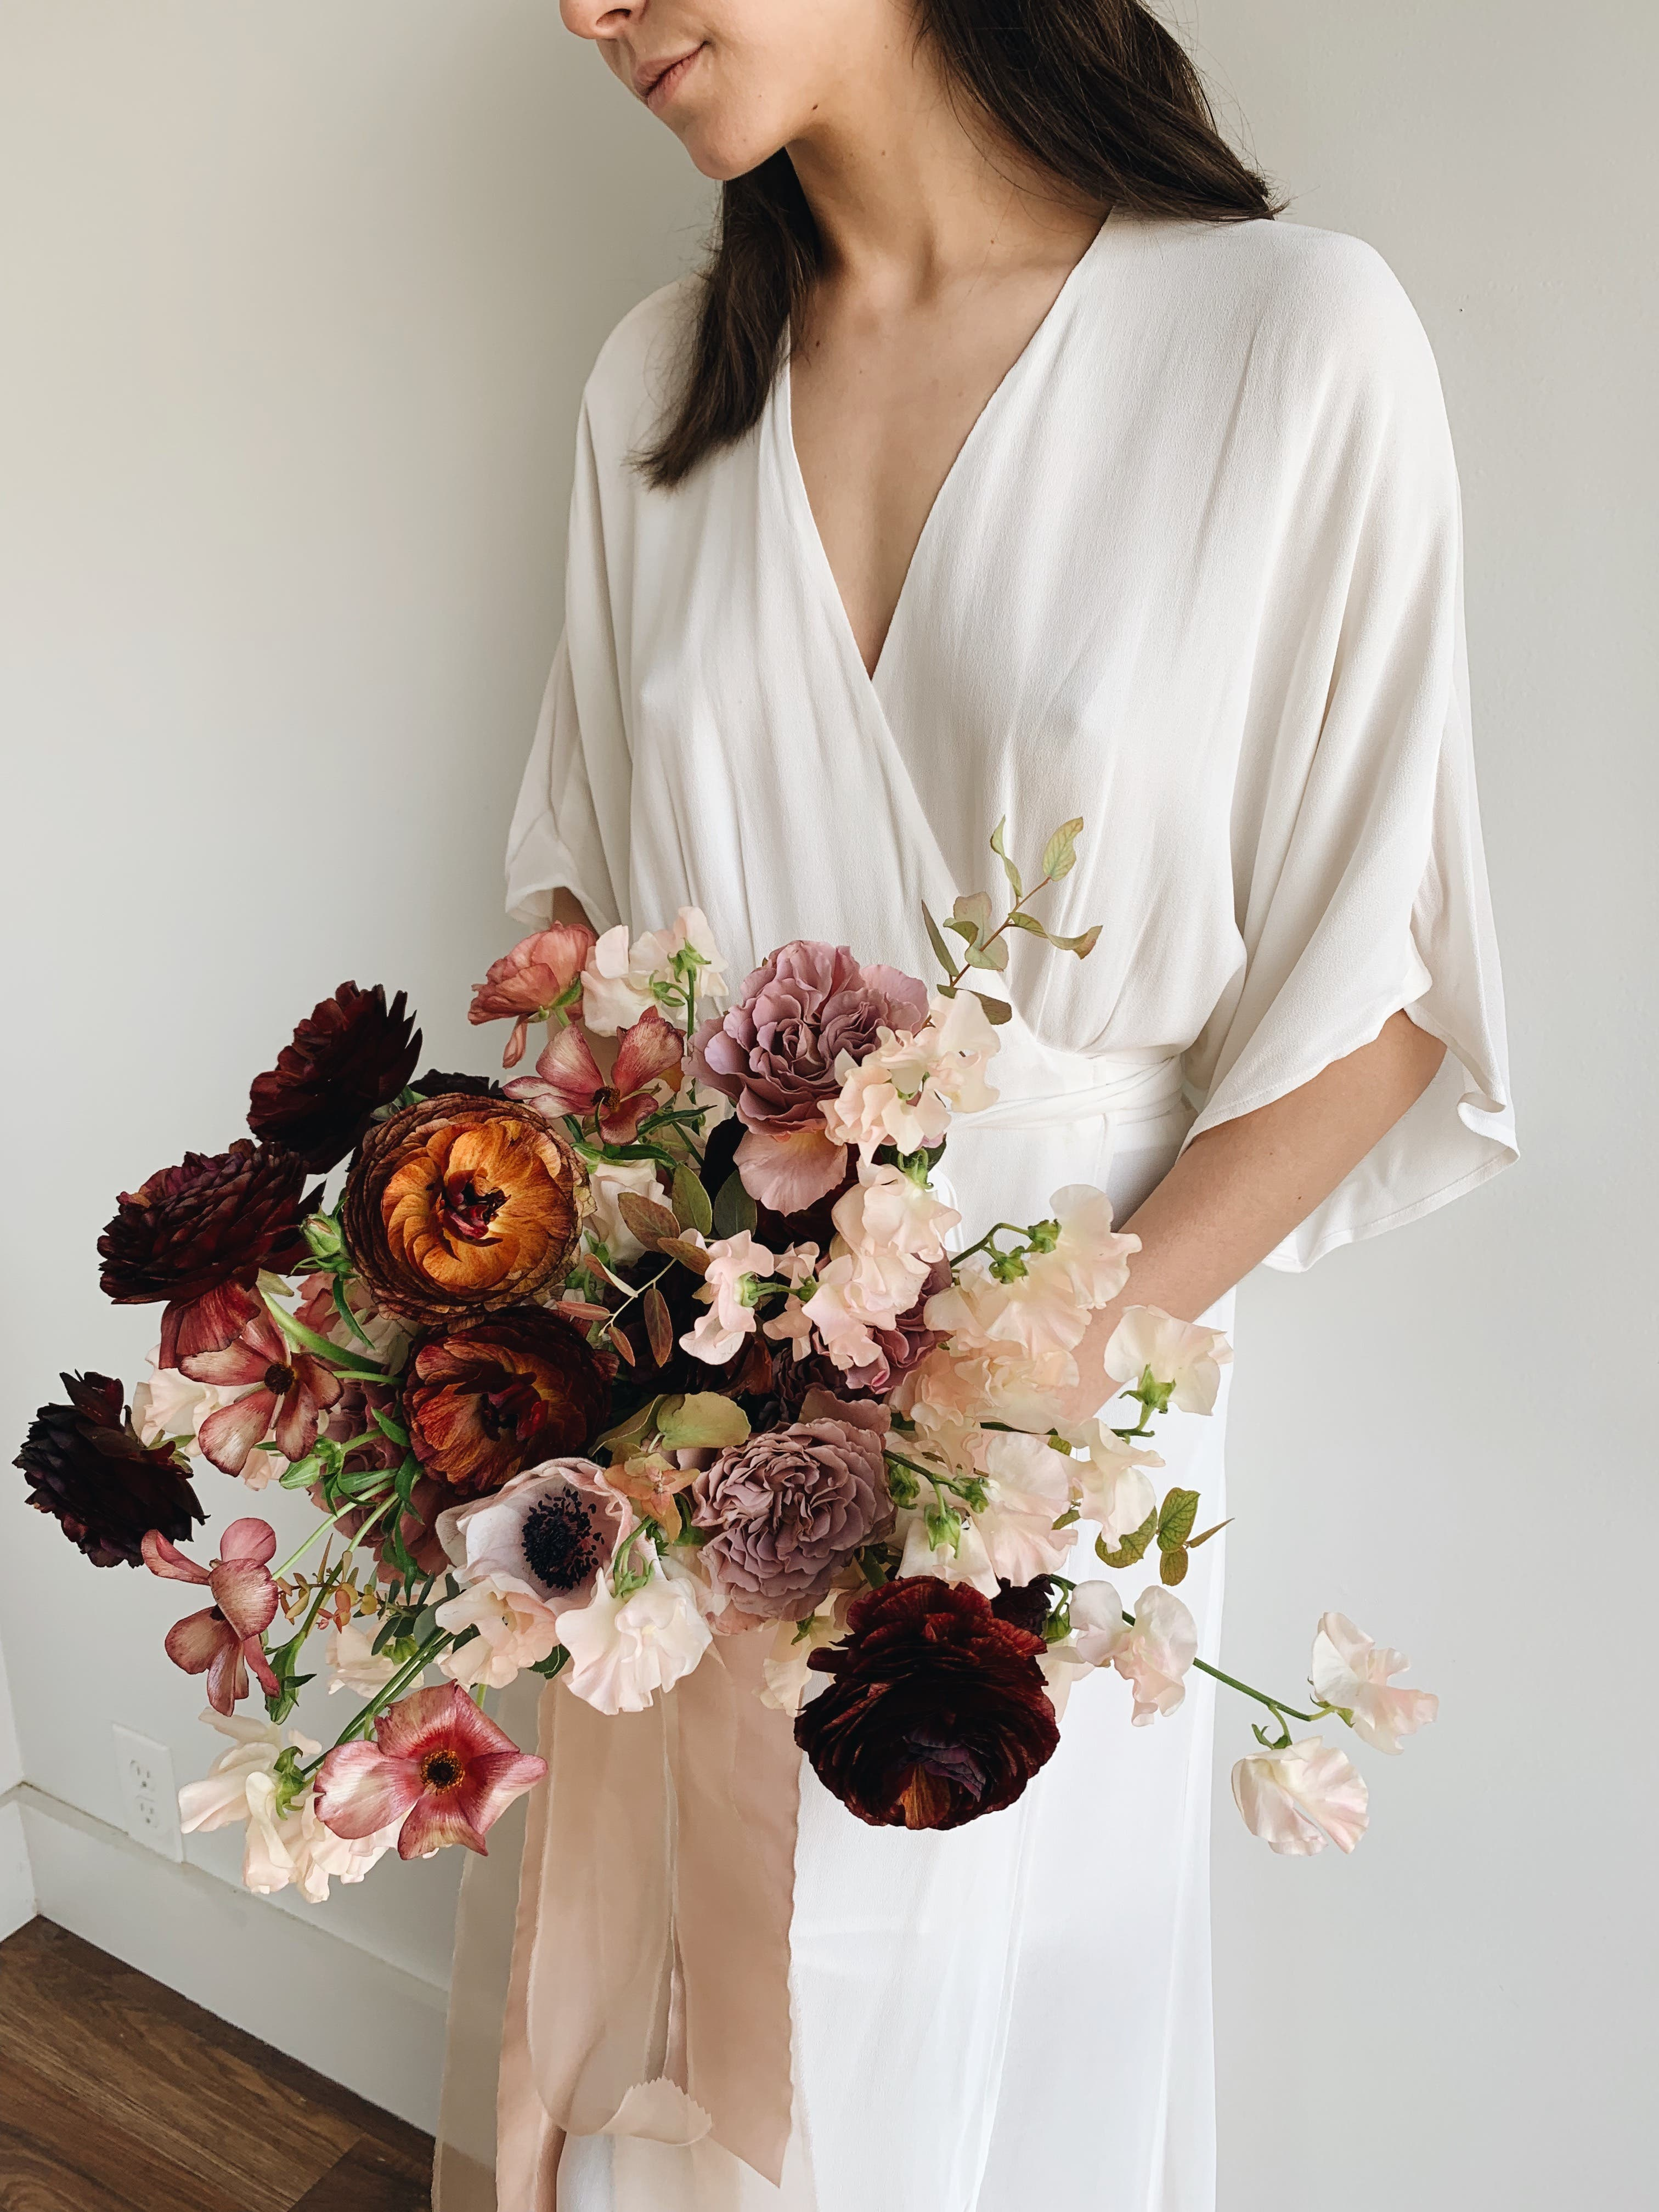 The Bouquet Intensive